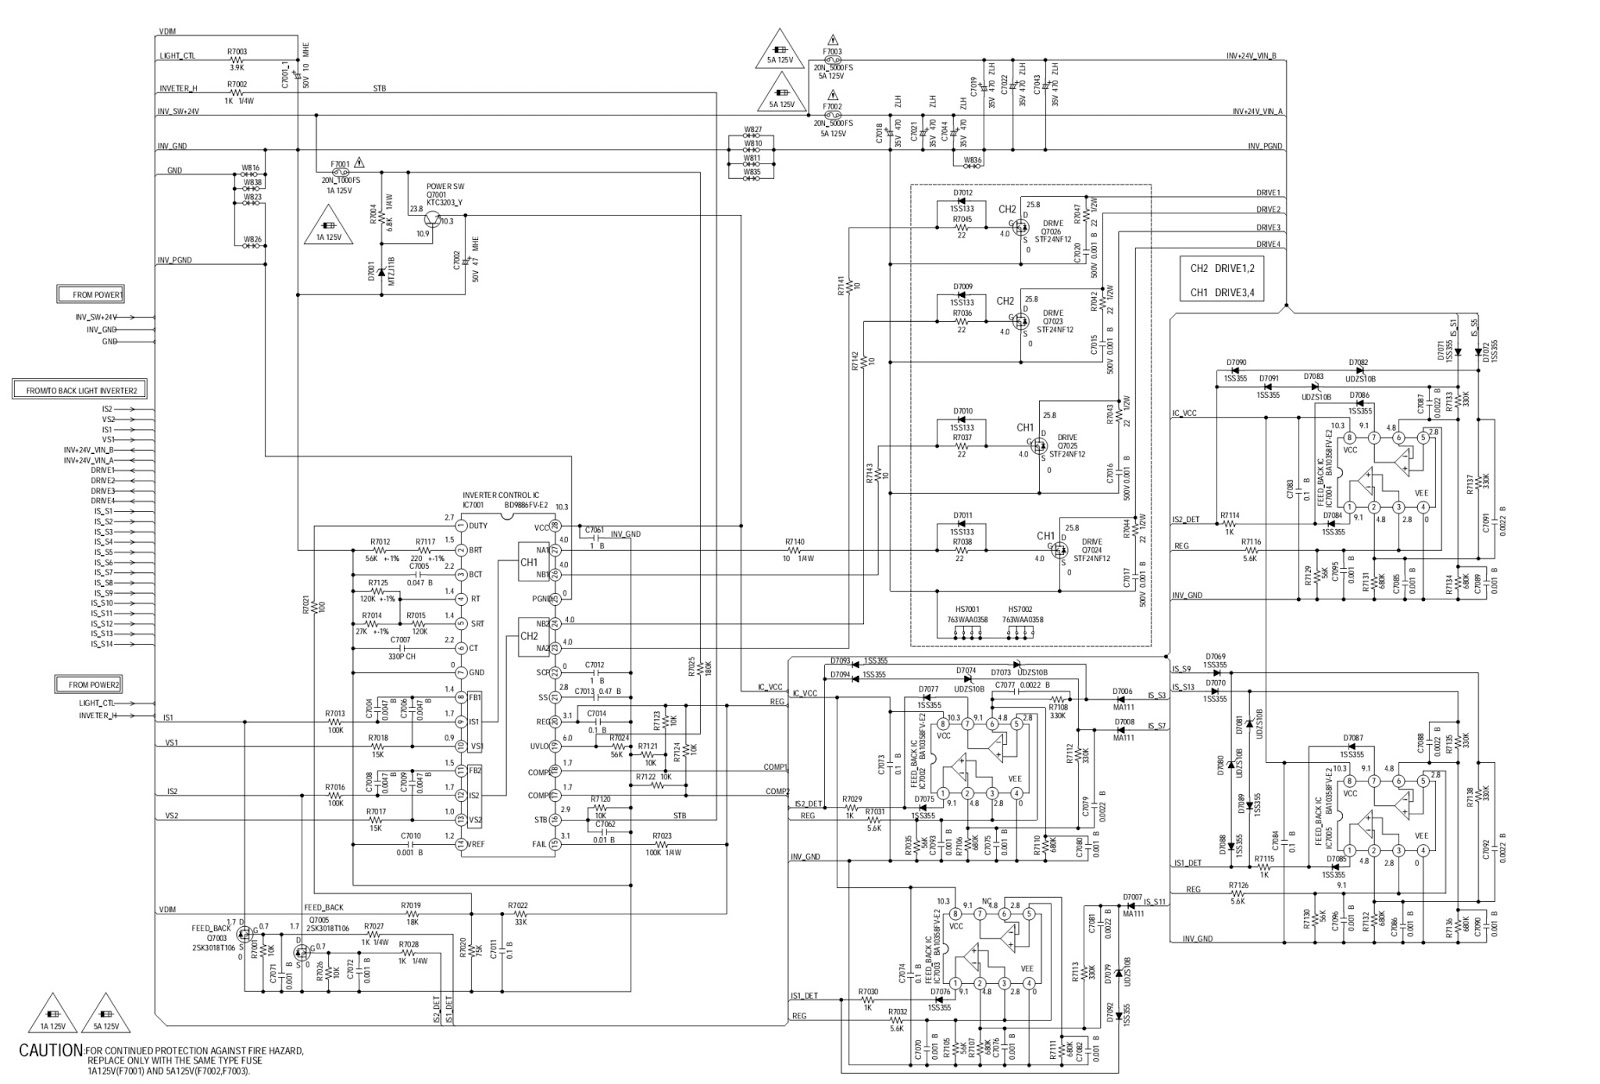 medium resolution of rv electrical wiring diagram for tv wiring diagram source rv dual battery wiring diagram rv electrical wiring diagram for tv